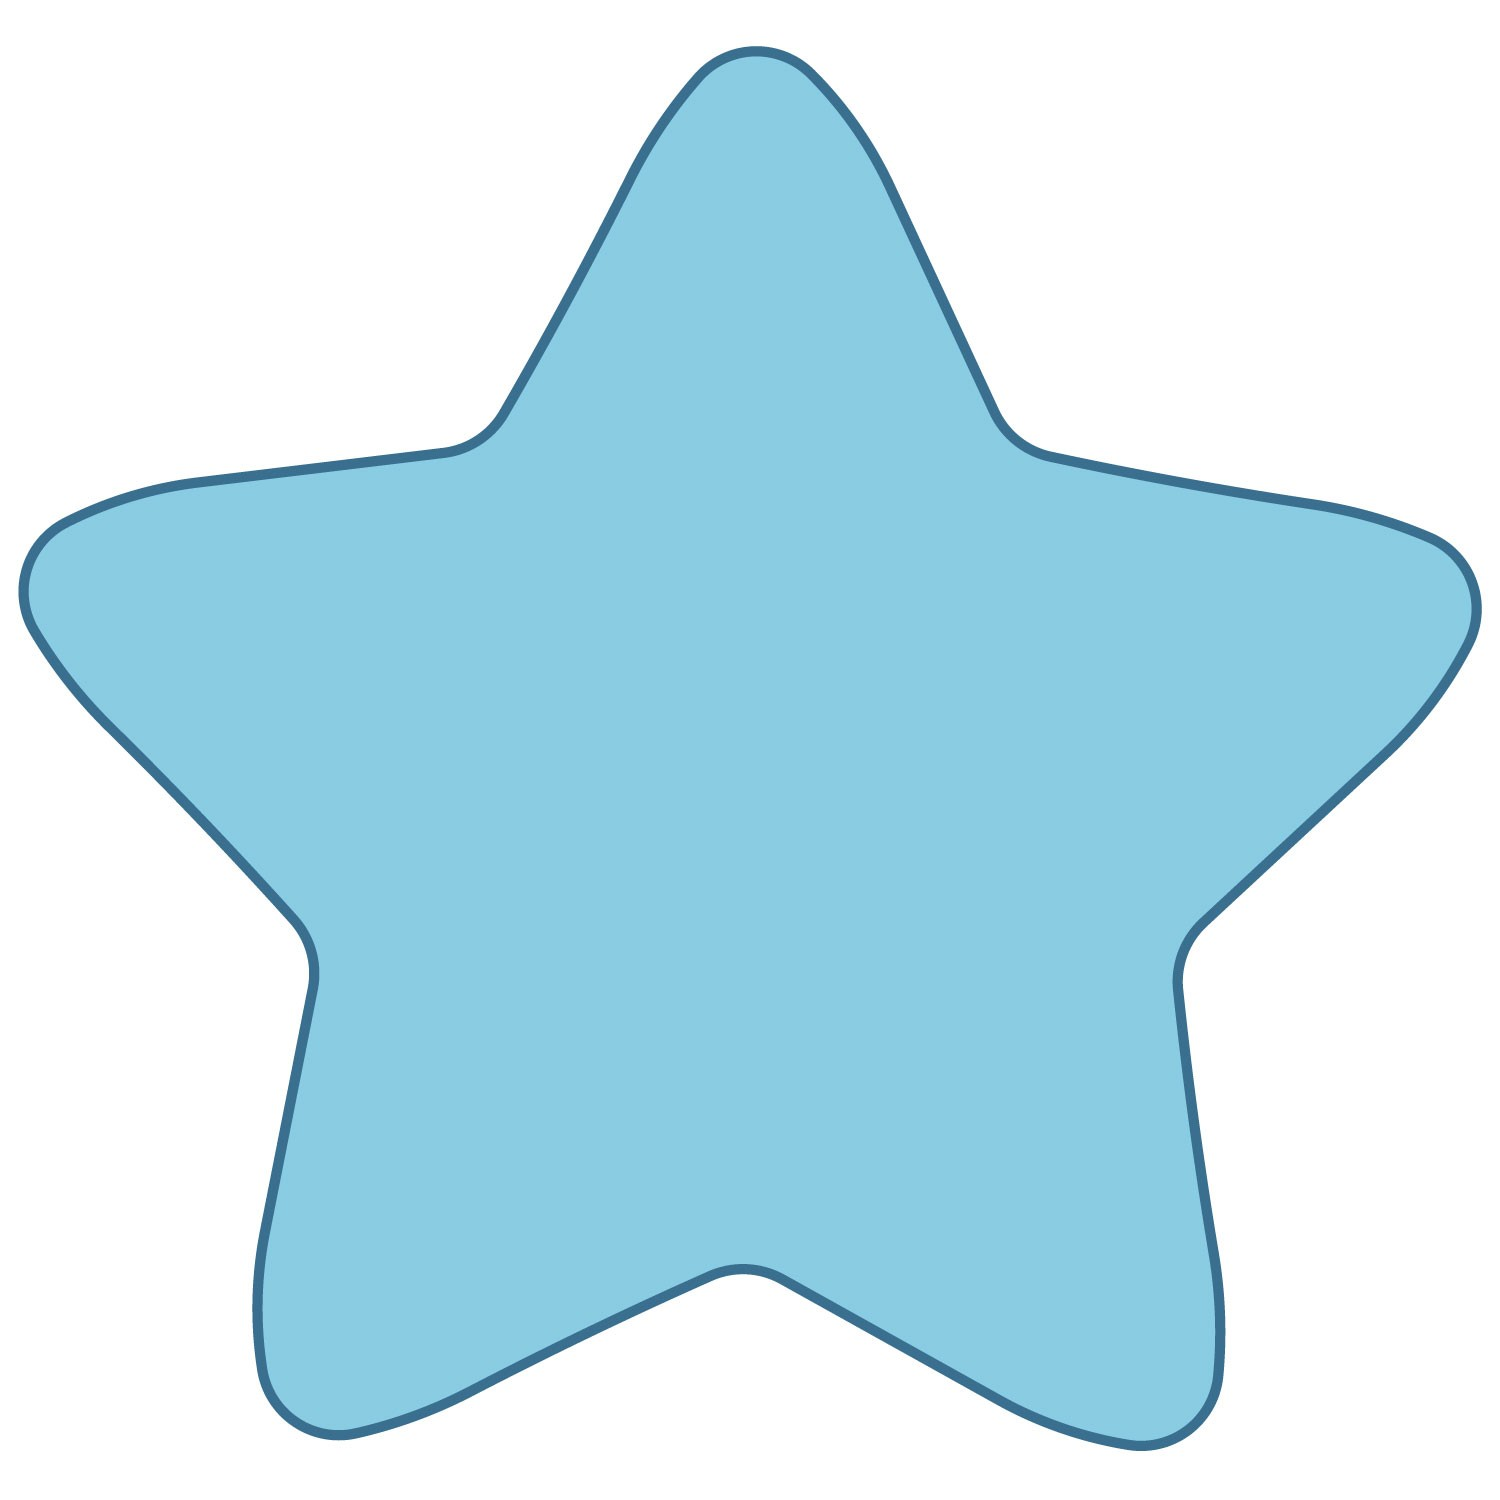 Star Rounded Edges Clipart.